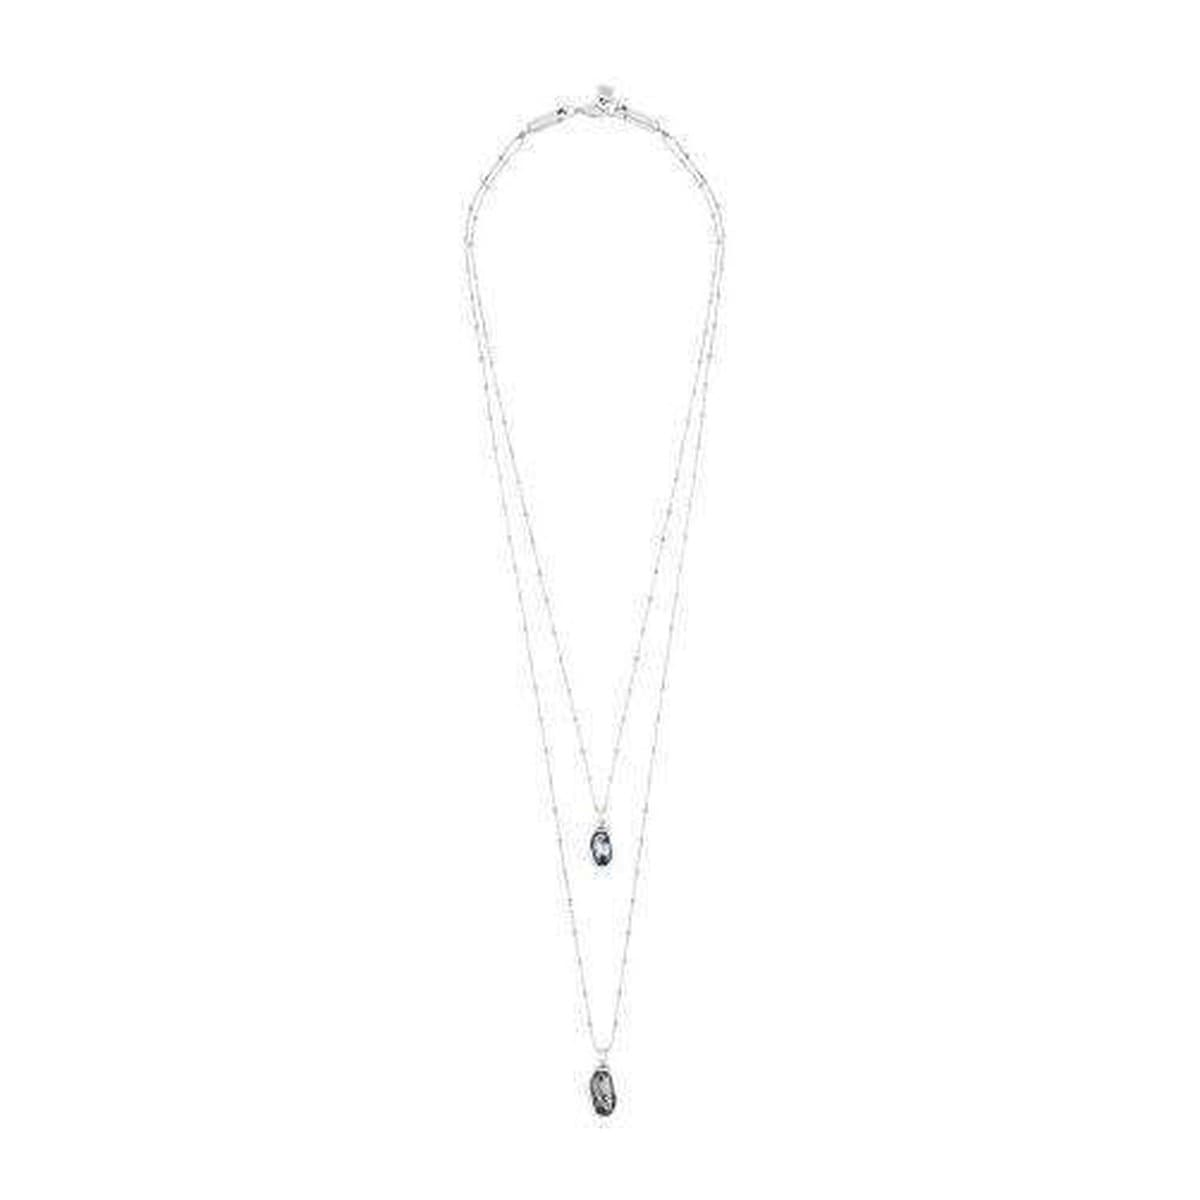 On Tip Toes Necklace - COL0814HUMAZU0U-UNO de 50-Renee Taylor Gallery